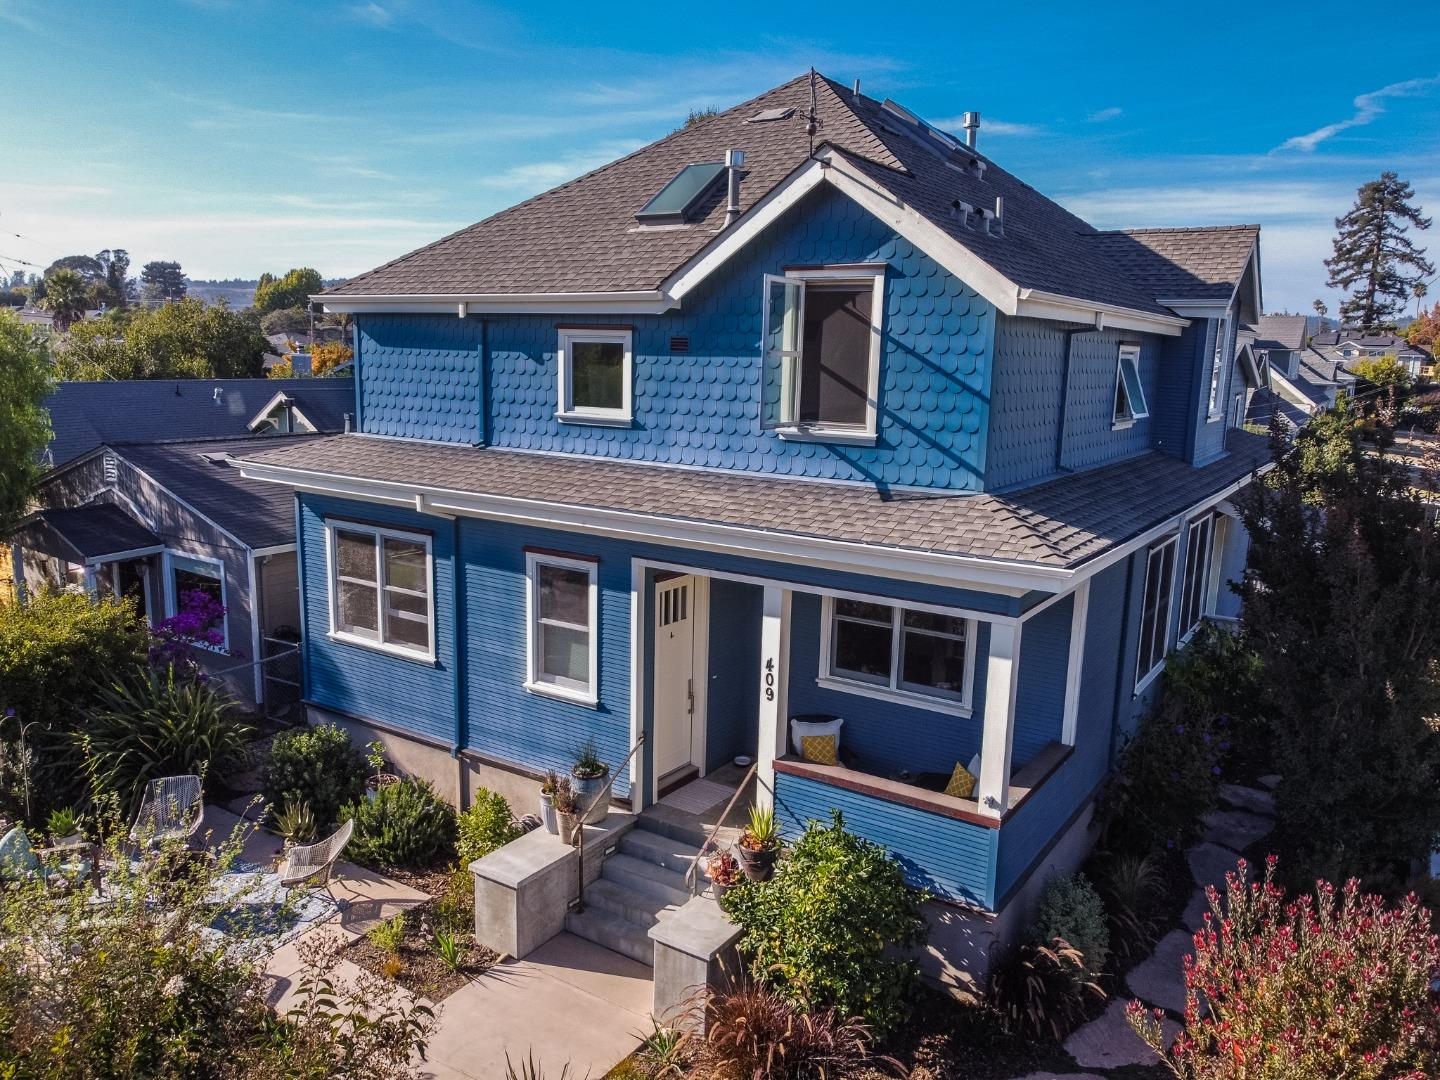 Beautiful 2012 Craftsman-inspired home on a quiet street in beach-going Seabright. Upscale residence features 4Br 4Ba house with 2 master suites and 1Br guest apartment, offering over 3,000 sqft of elegant living space. Main level features open floor plan, high ceilings, oversized windows, hardwood floors. Chef's kitchen boasts Thermador range, pantry, and stainless appliances. Spacious hall leads to master suite w/ marble bathroom & walk-in closet. Completing the level is guest bedroom & full bath. Upstairs features vaulted ceilings, master suite w/ sitting area, marble bathroom, walk-in closet. Extra bedroom, bathroom & large laundry room complete the level.  Enjoy spacious front porch and two patio areas enhanced by fully fenced landscaped yard & stone paths, fruit trees, and raised vegetable beds. A designer apartment above 2-car garage offers infinite possibilities. Only a few blocks from best restaurants, breweries, coffee shops, and a short walk to Yacht Harbor & Castle Beach.